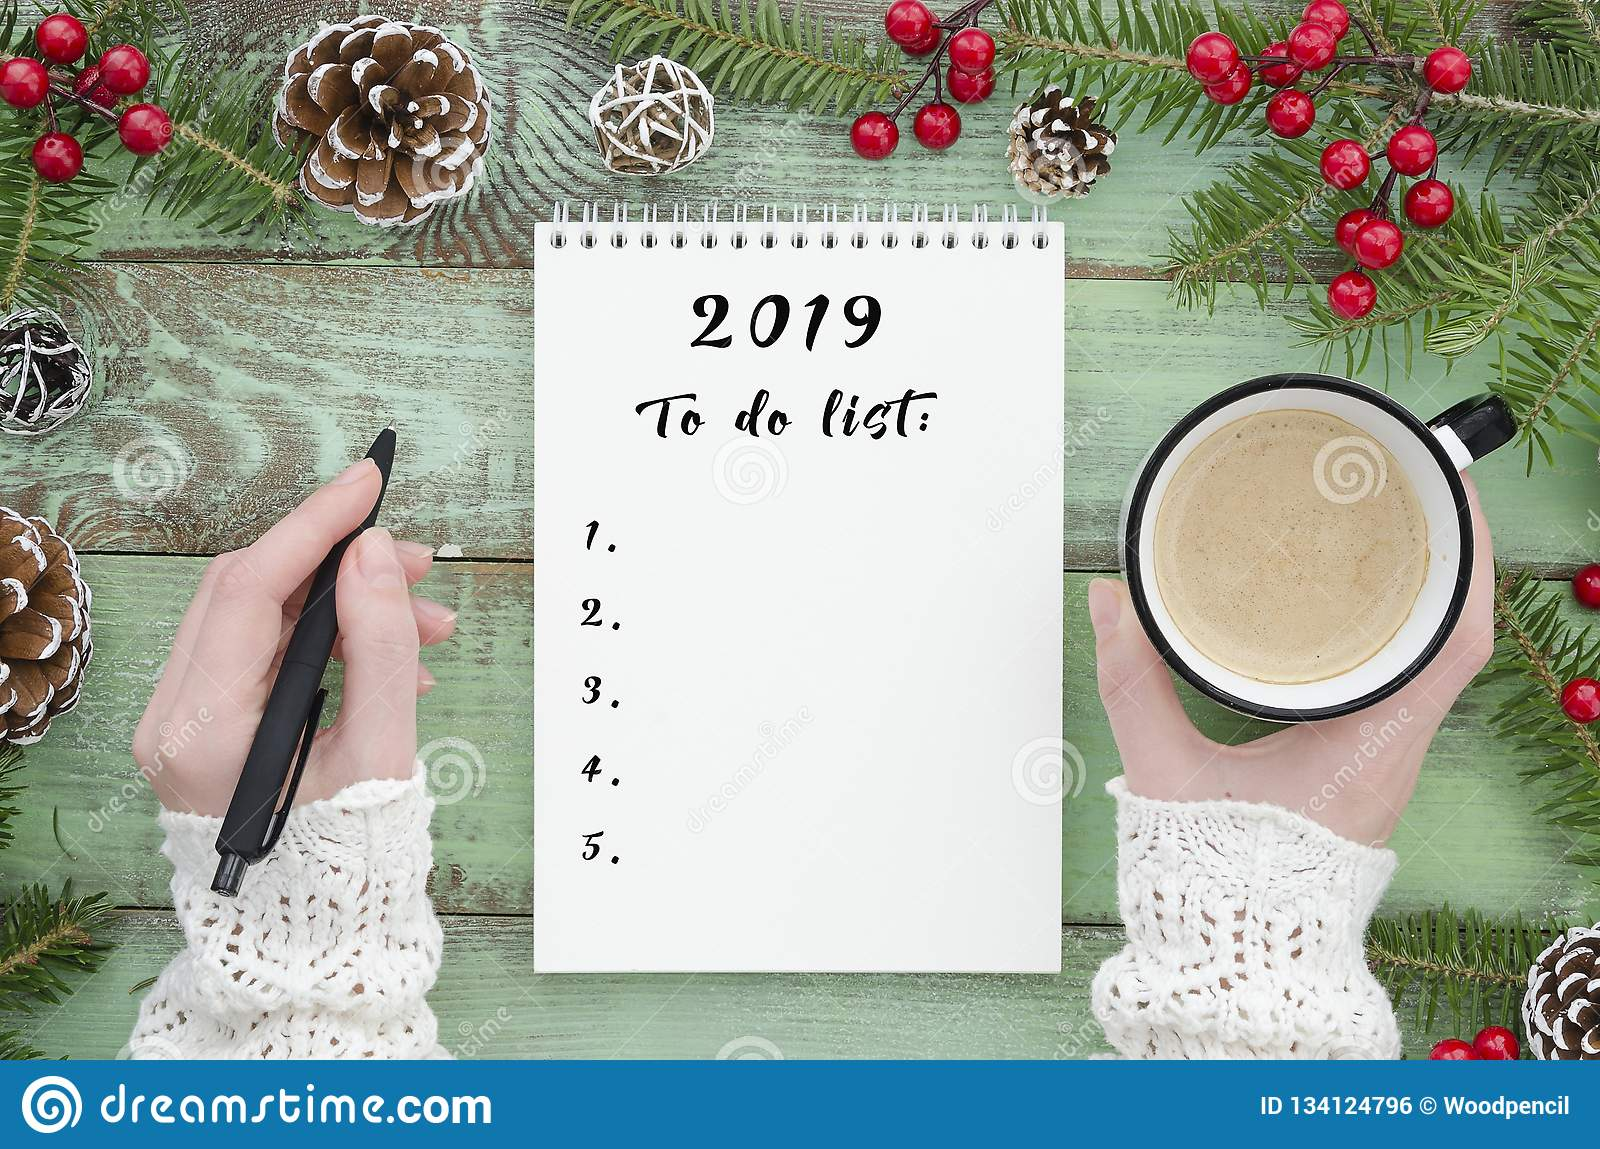 Christmas List 2019.To Do List 2019 Flat Lay Girl Hand Holding Pen And Coffee